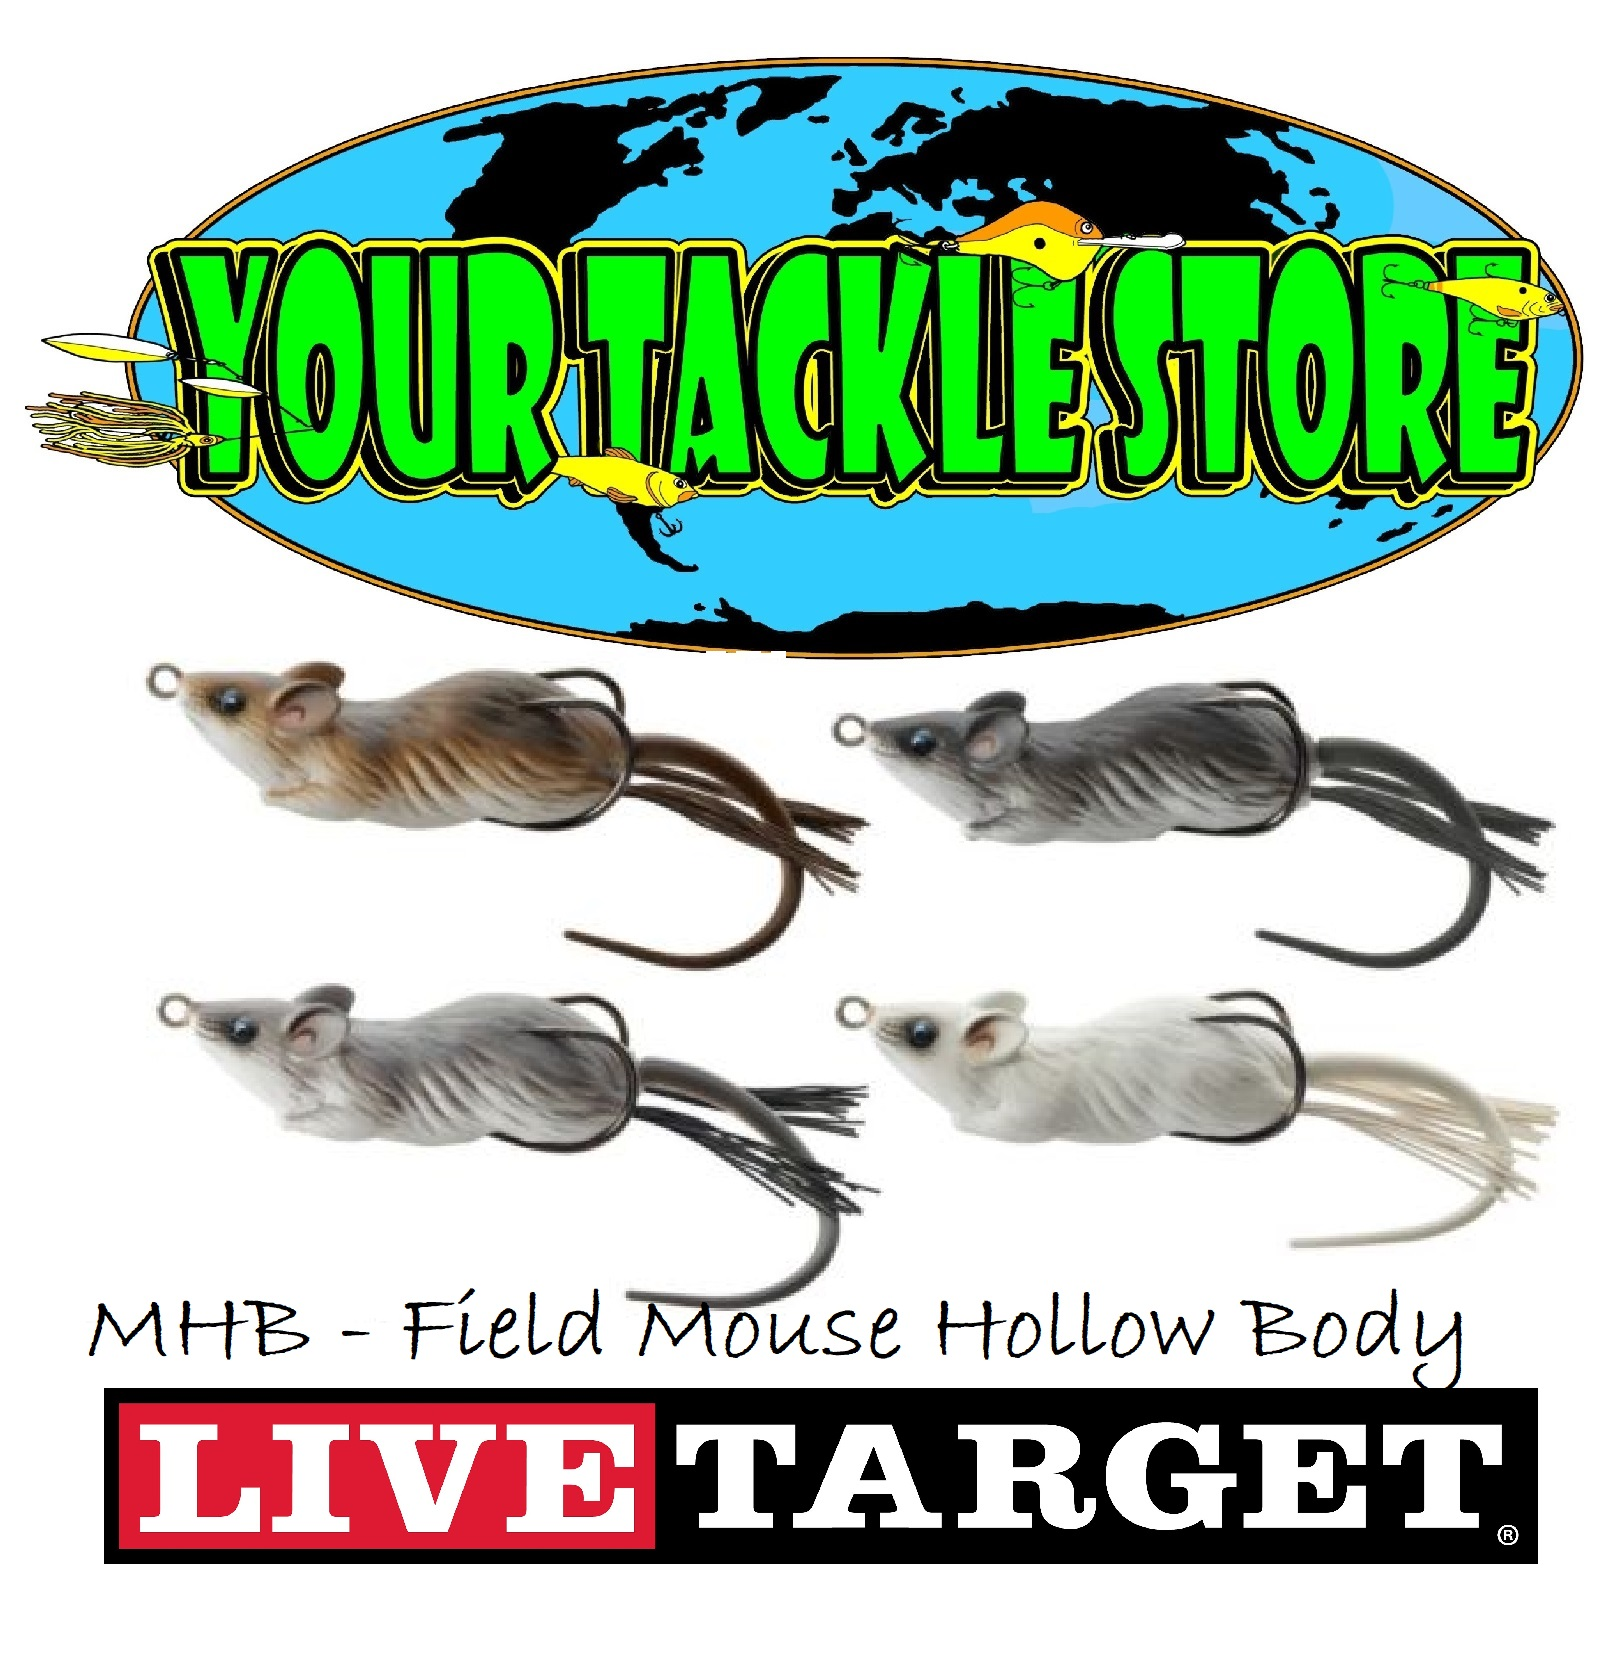 Live Target Hollow Body Mouse